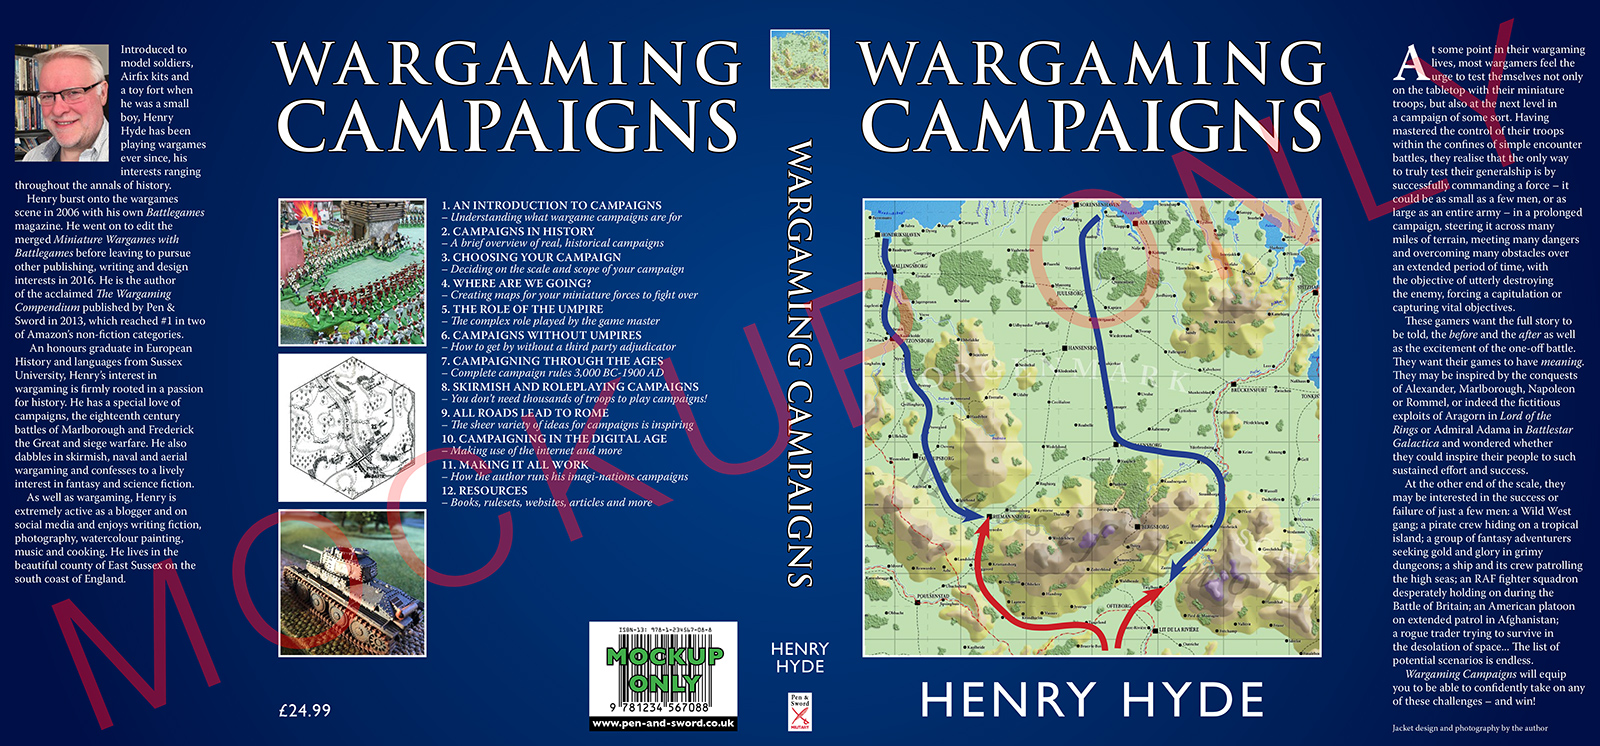 Wargaming Campaigns by Henry Hyde